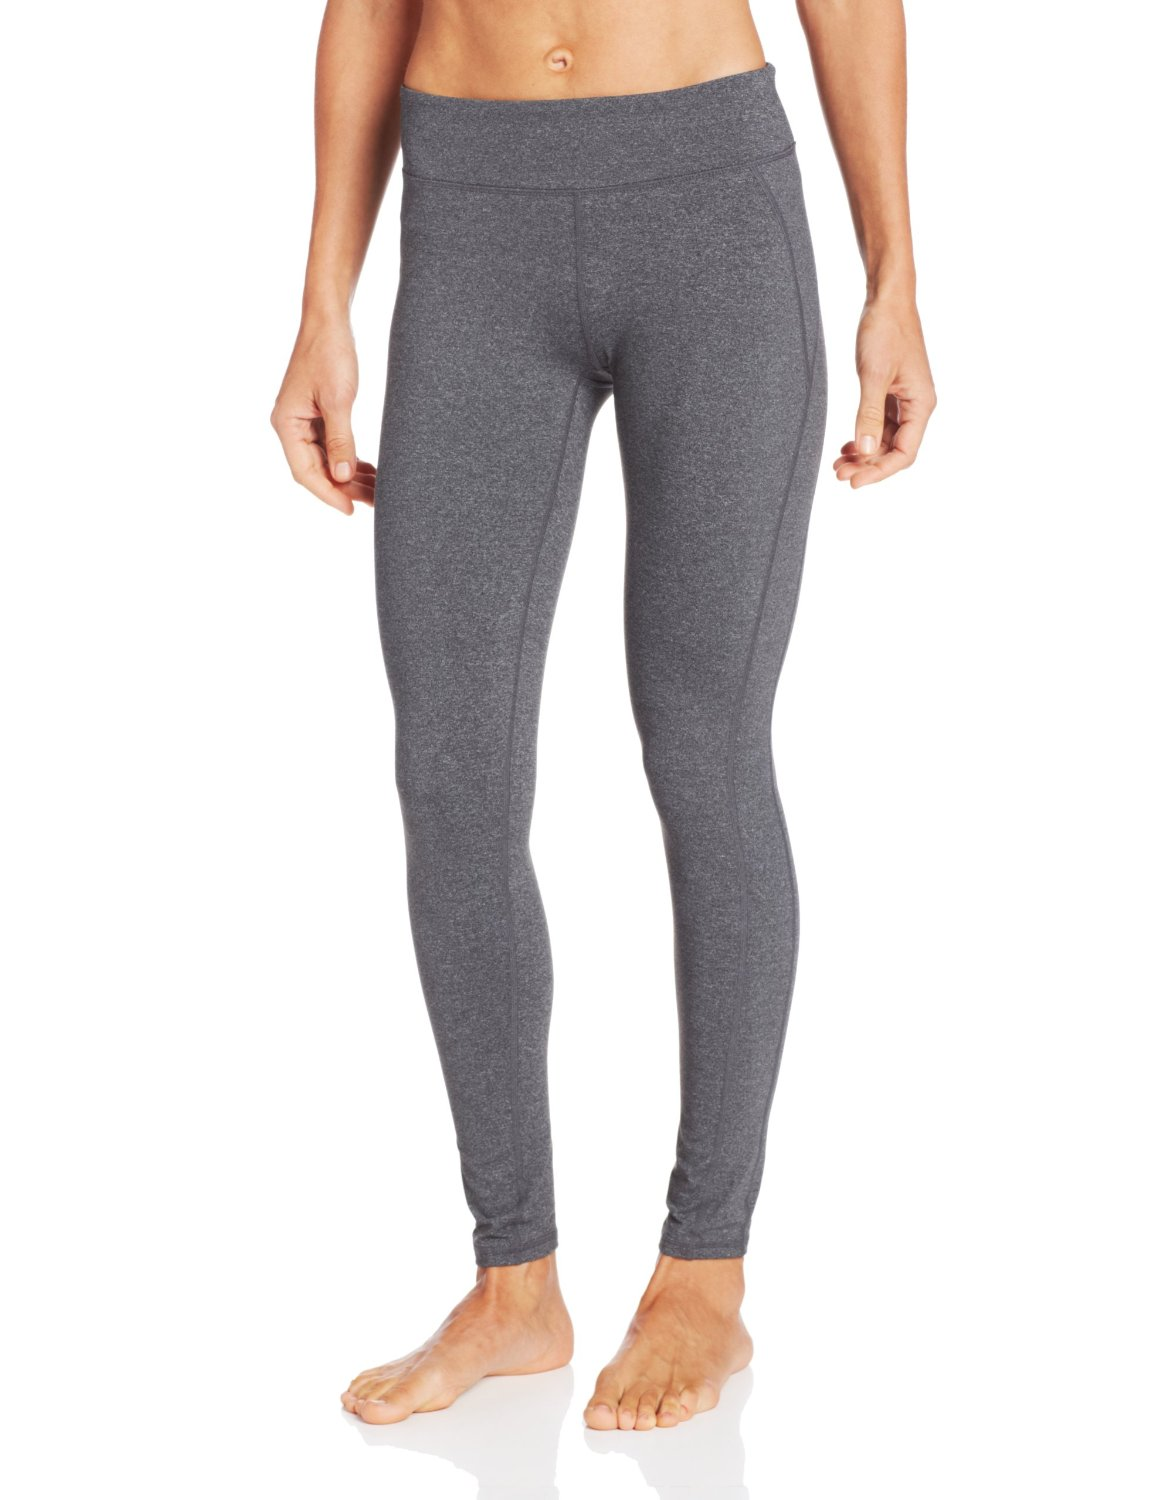 Amazon.com : Soybu Women's Killer Caboose Legging : Athletic Leggings : Sports & Outdoors